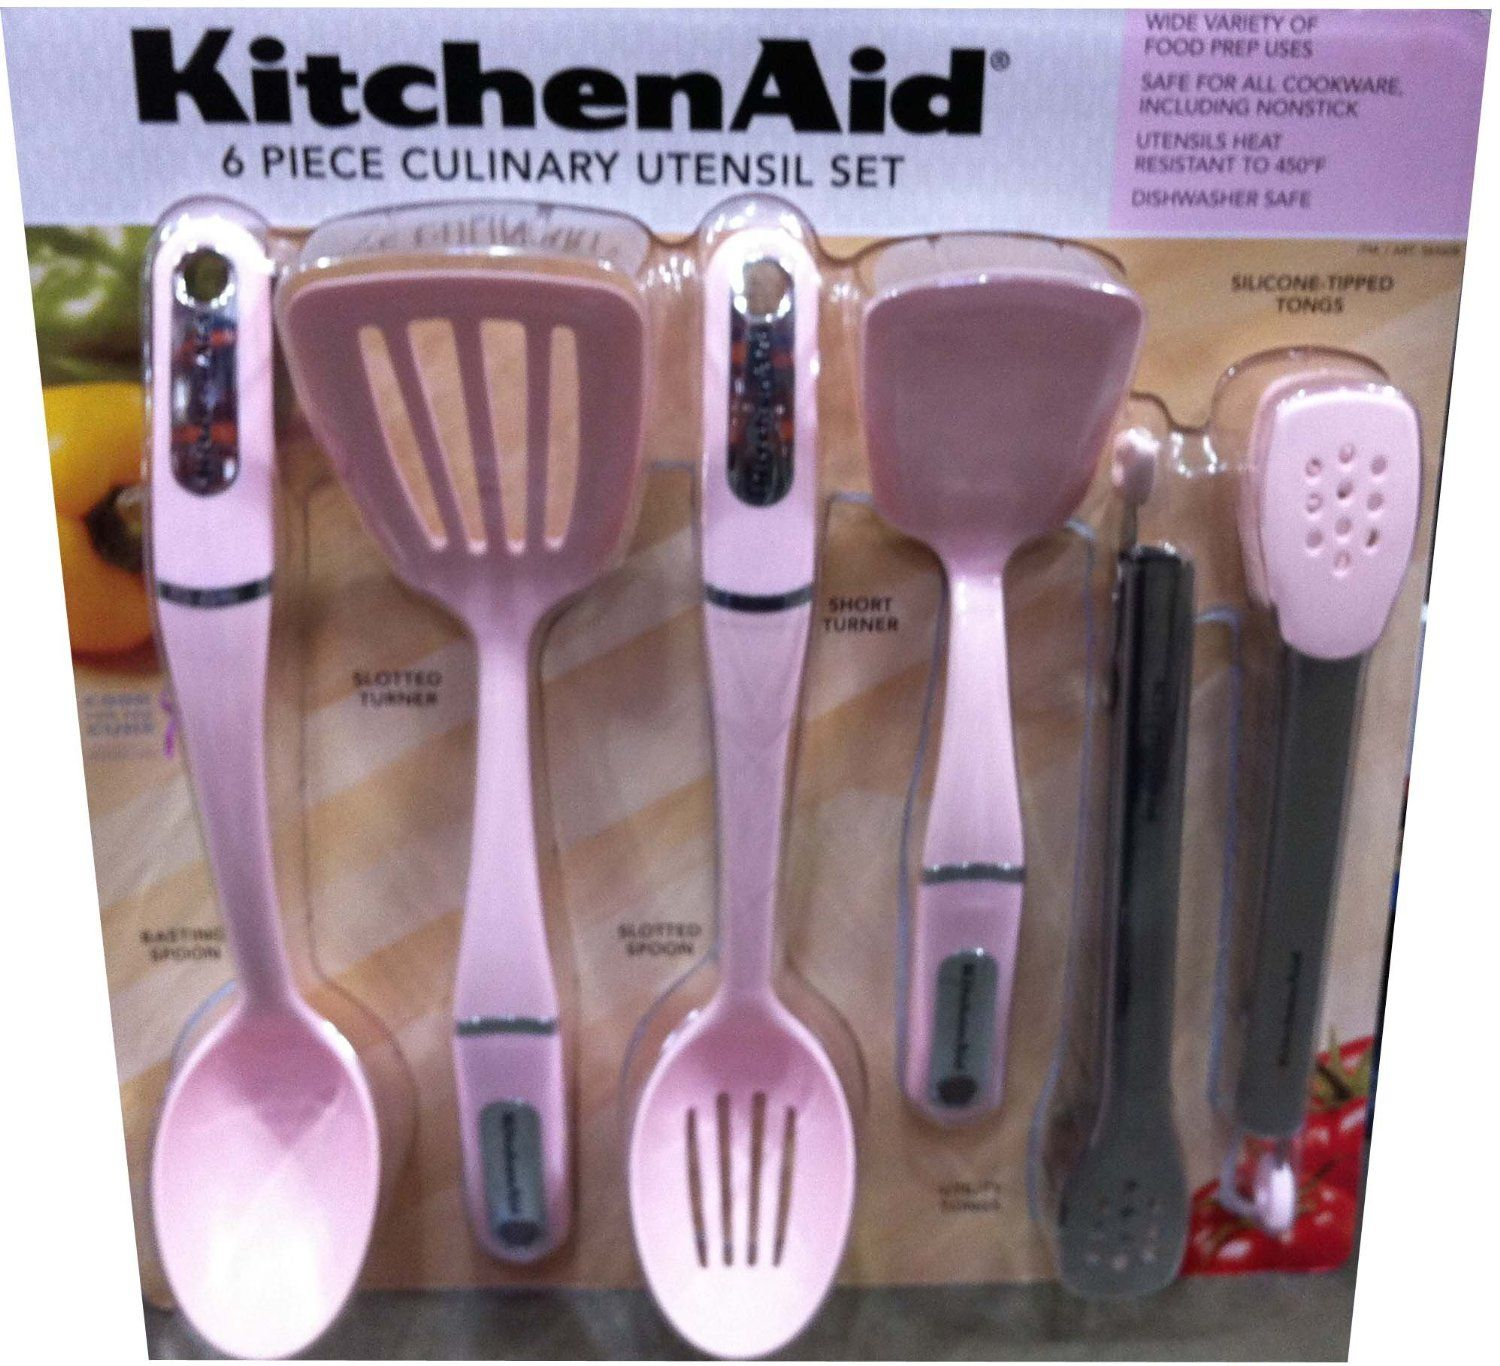 Kitchen aid 6 piece culinary utensil set in pink pink